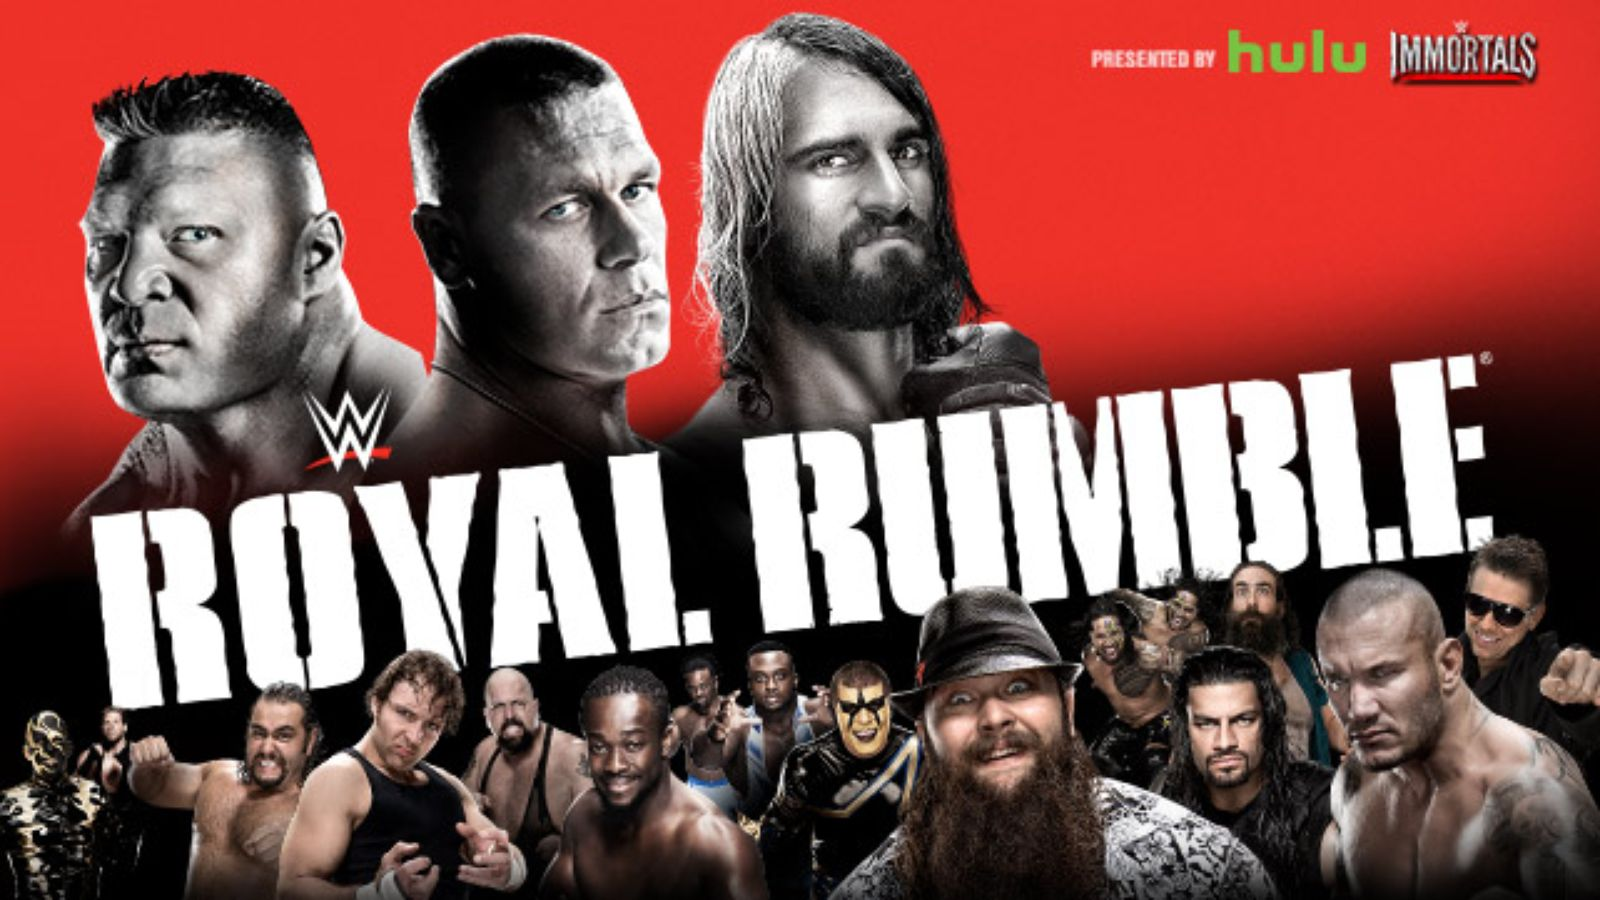 20150115_RoyalRumble_LIGHT_HOMEPAGE.0.0